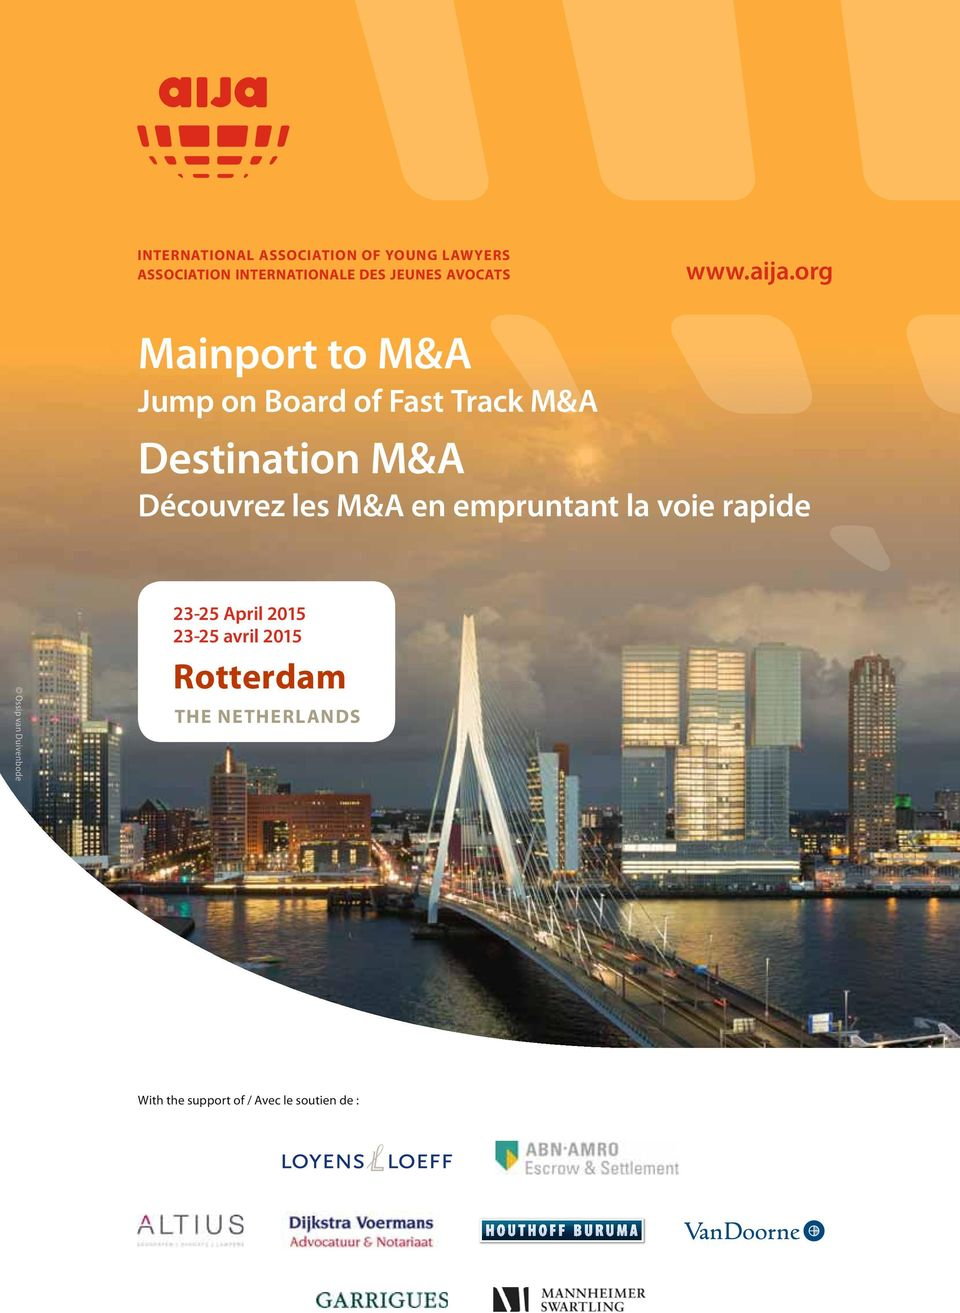 org Mainport to M&A Jump on Board of Fast Track M&A Destination M&A Découvrez les M&A